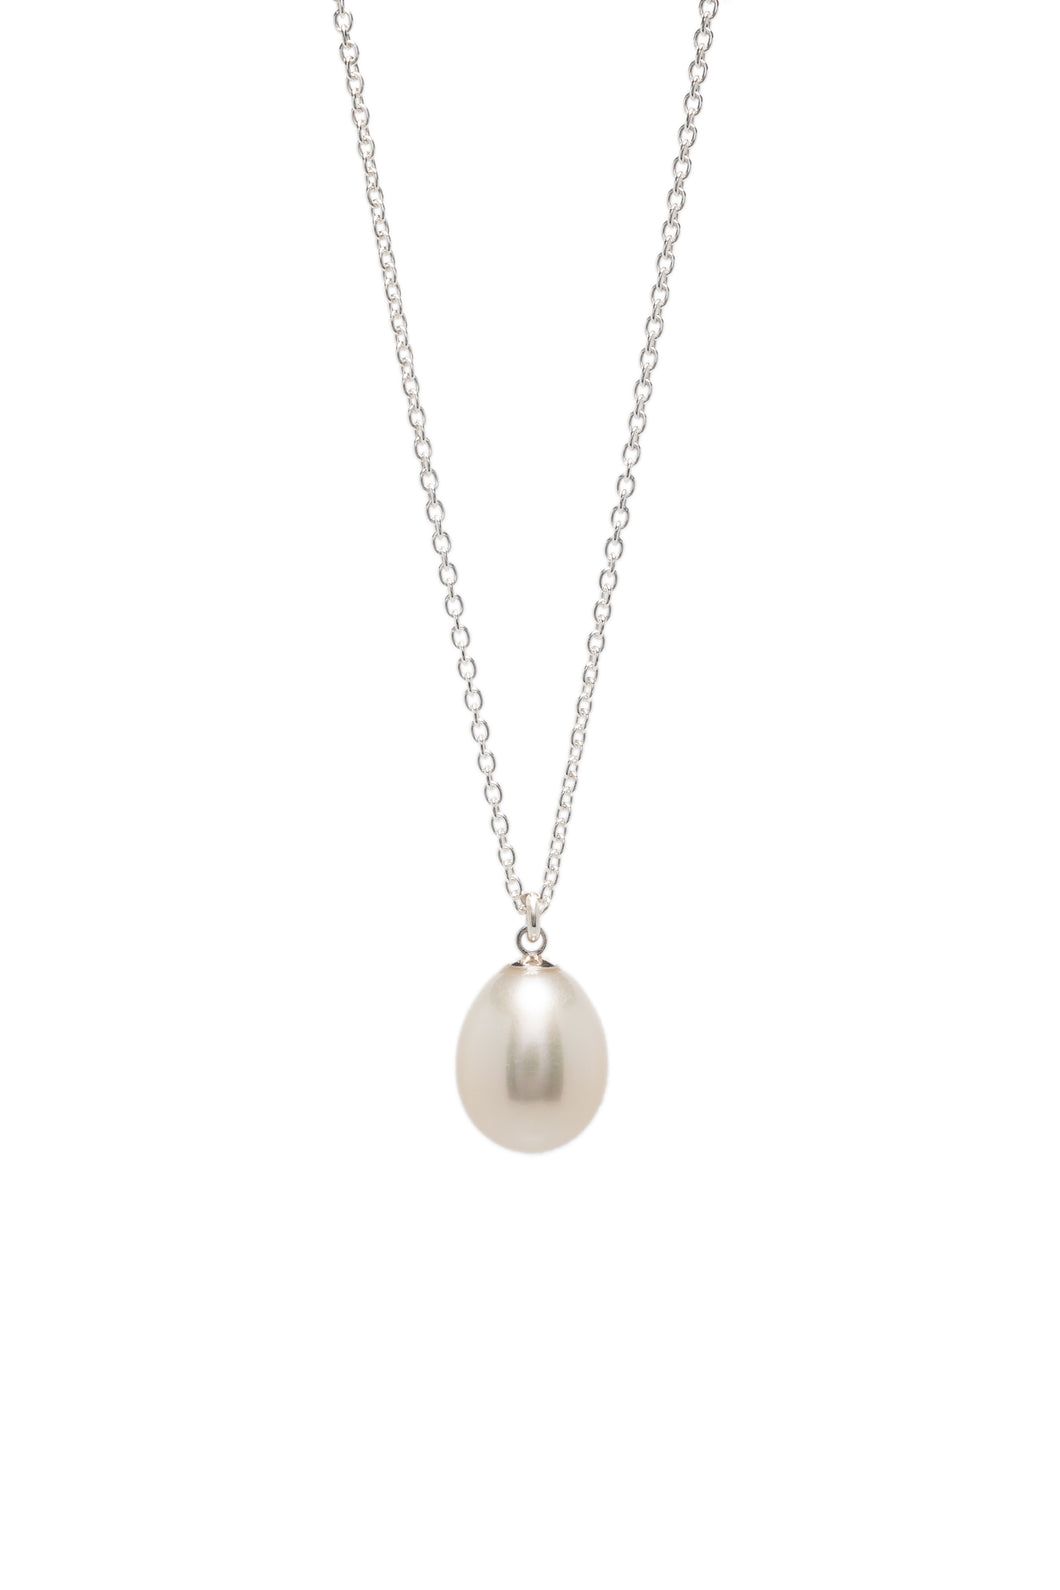 Freshwater Tear Drop Pearl Necklace